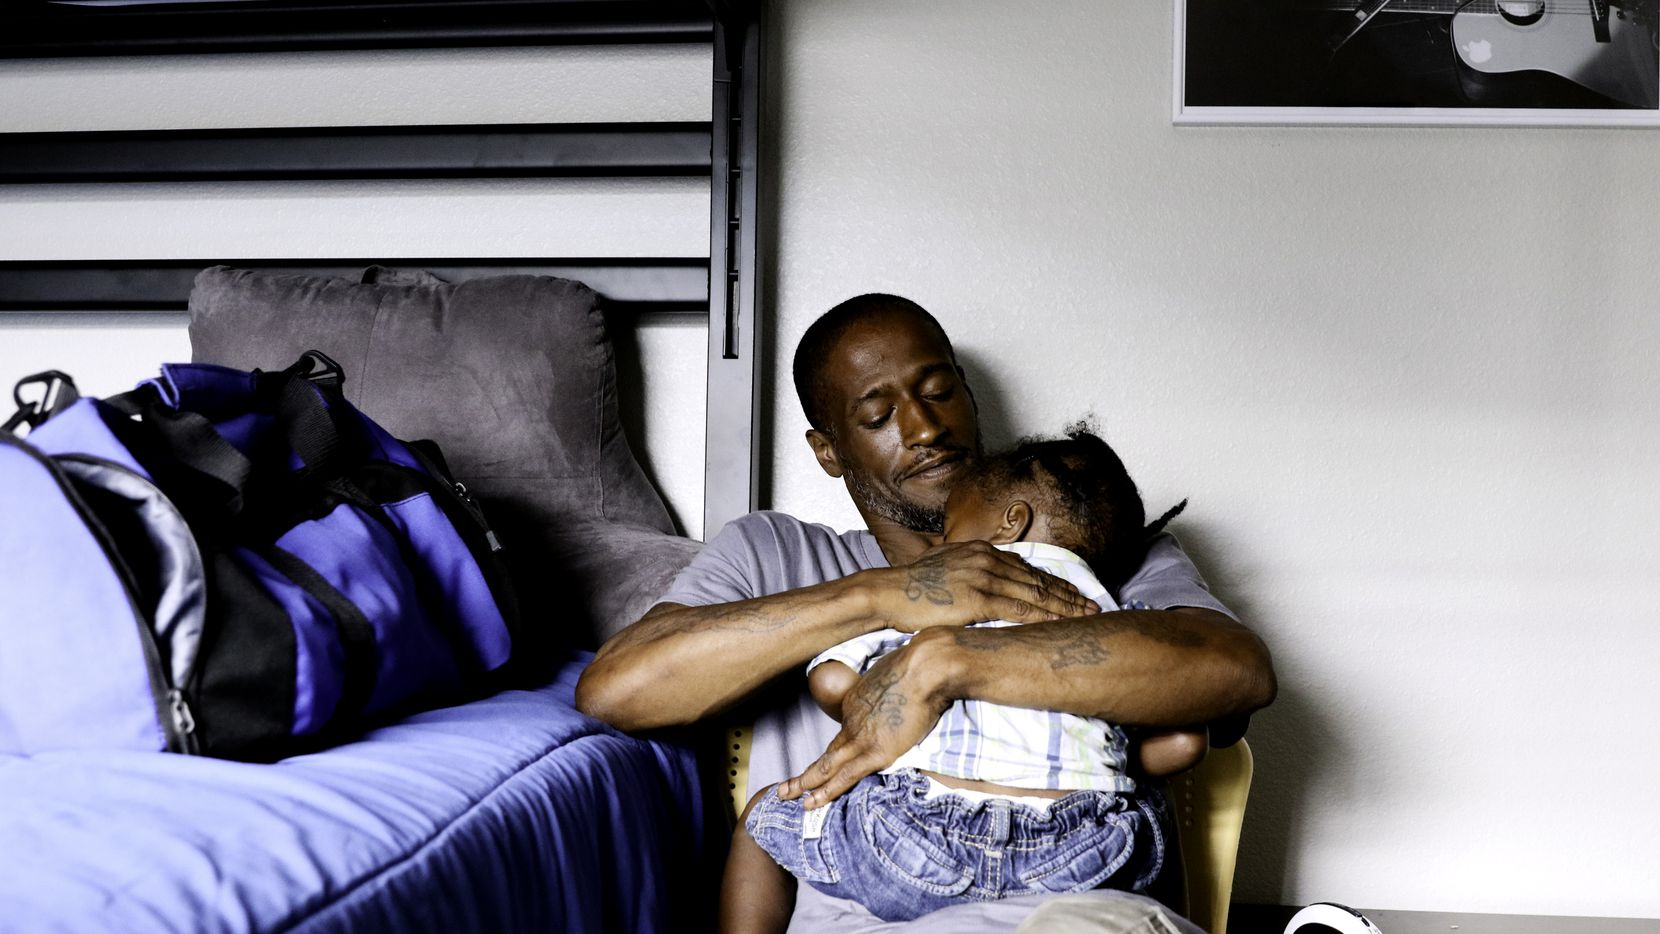 Joshua Miller rocks his son Jordan, 2, to sleep at The Family Place's men's shelter in Dallas. Miller said the new living situation made his son a little anxious, so he likes to be there when he wakes up.